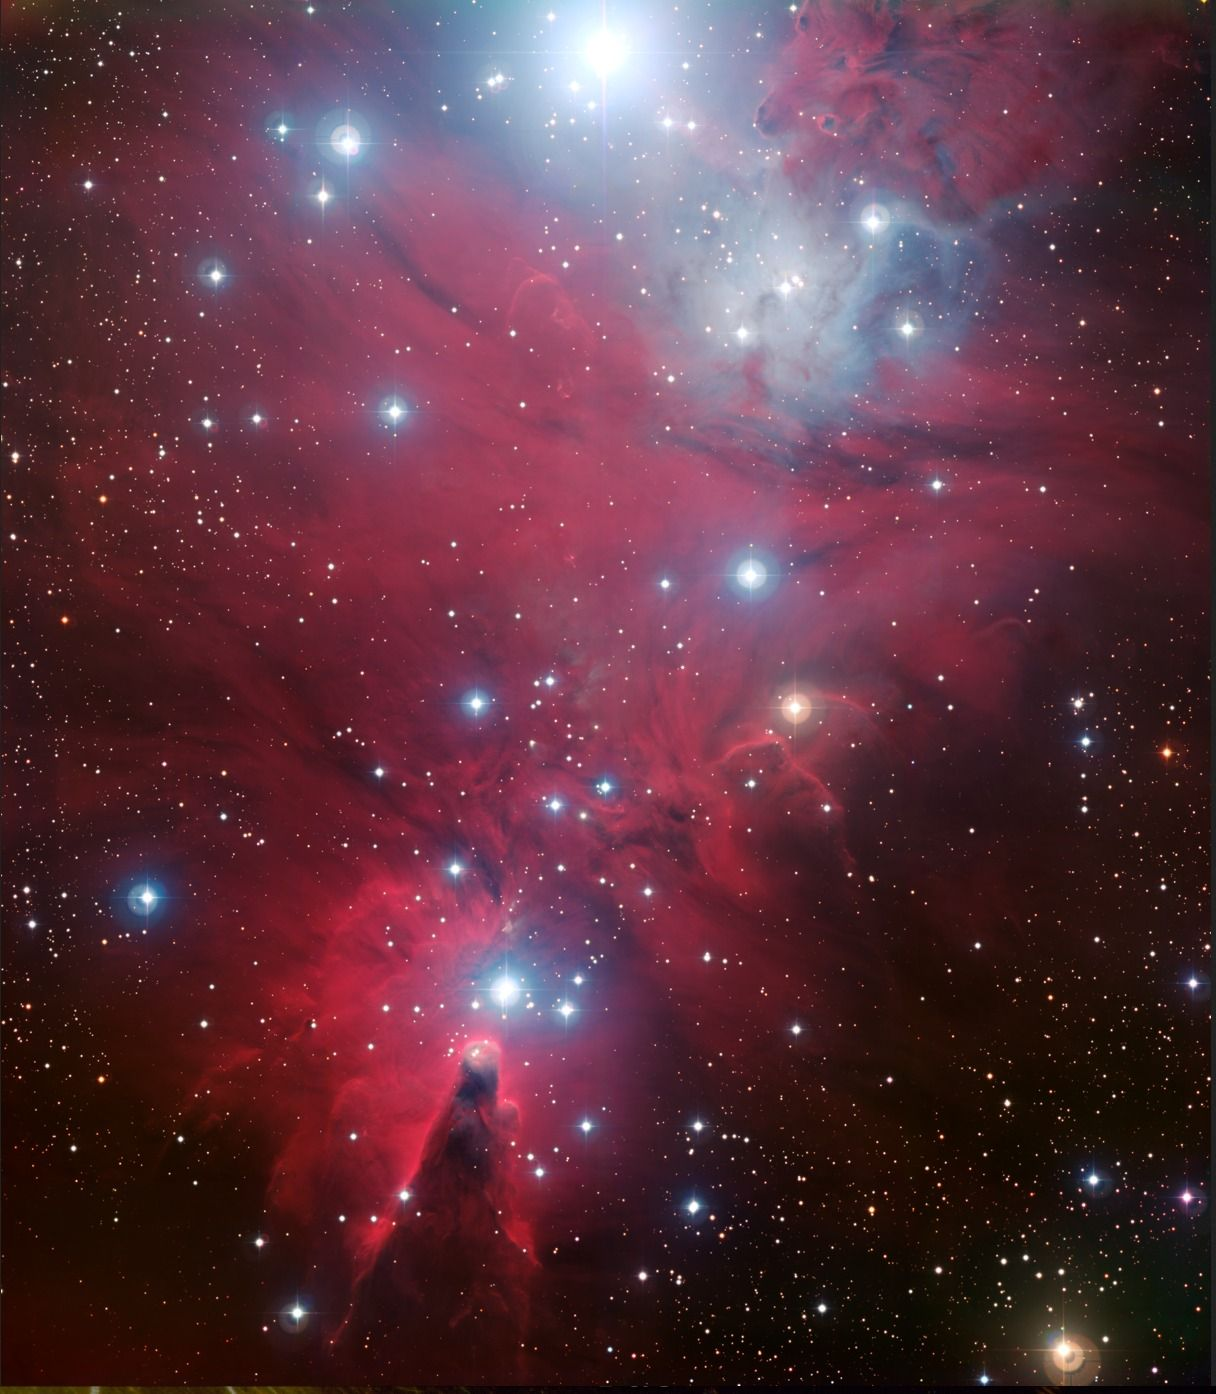 The Christmas Tree Cluster NGC 2264. Located 2,700 light